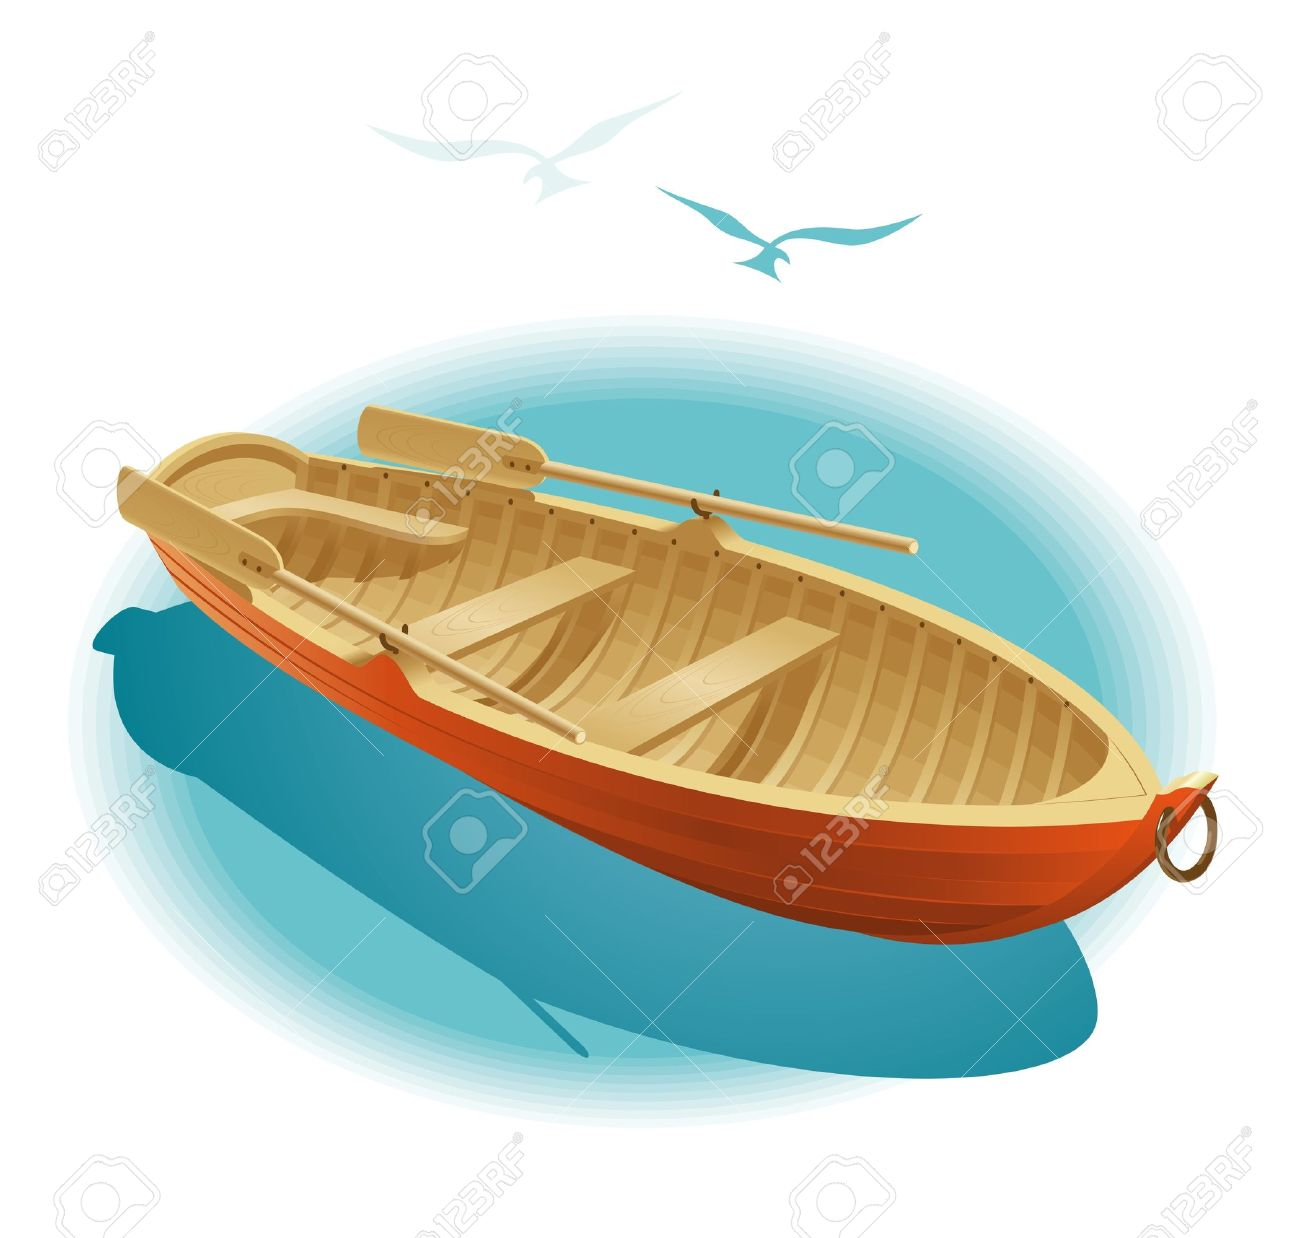 boat clipart water transport